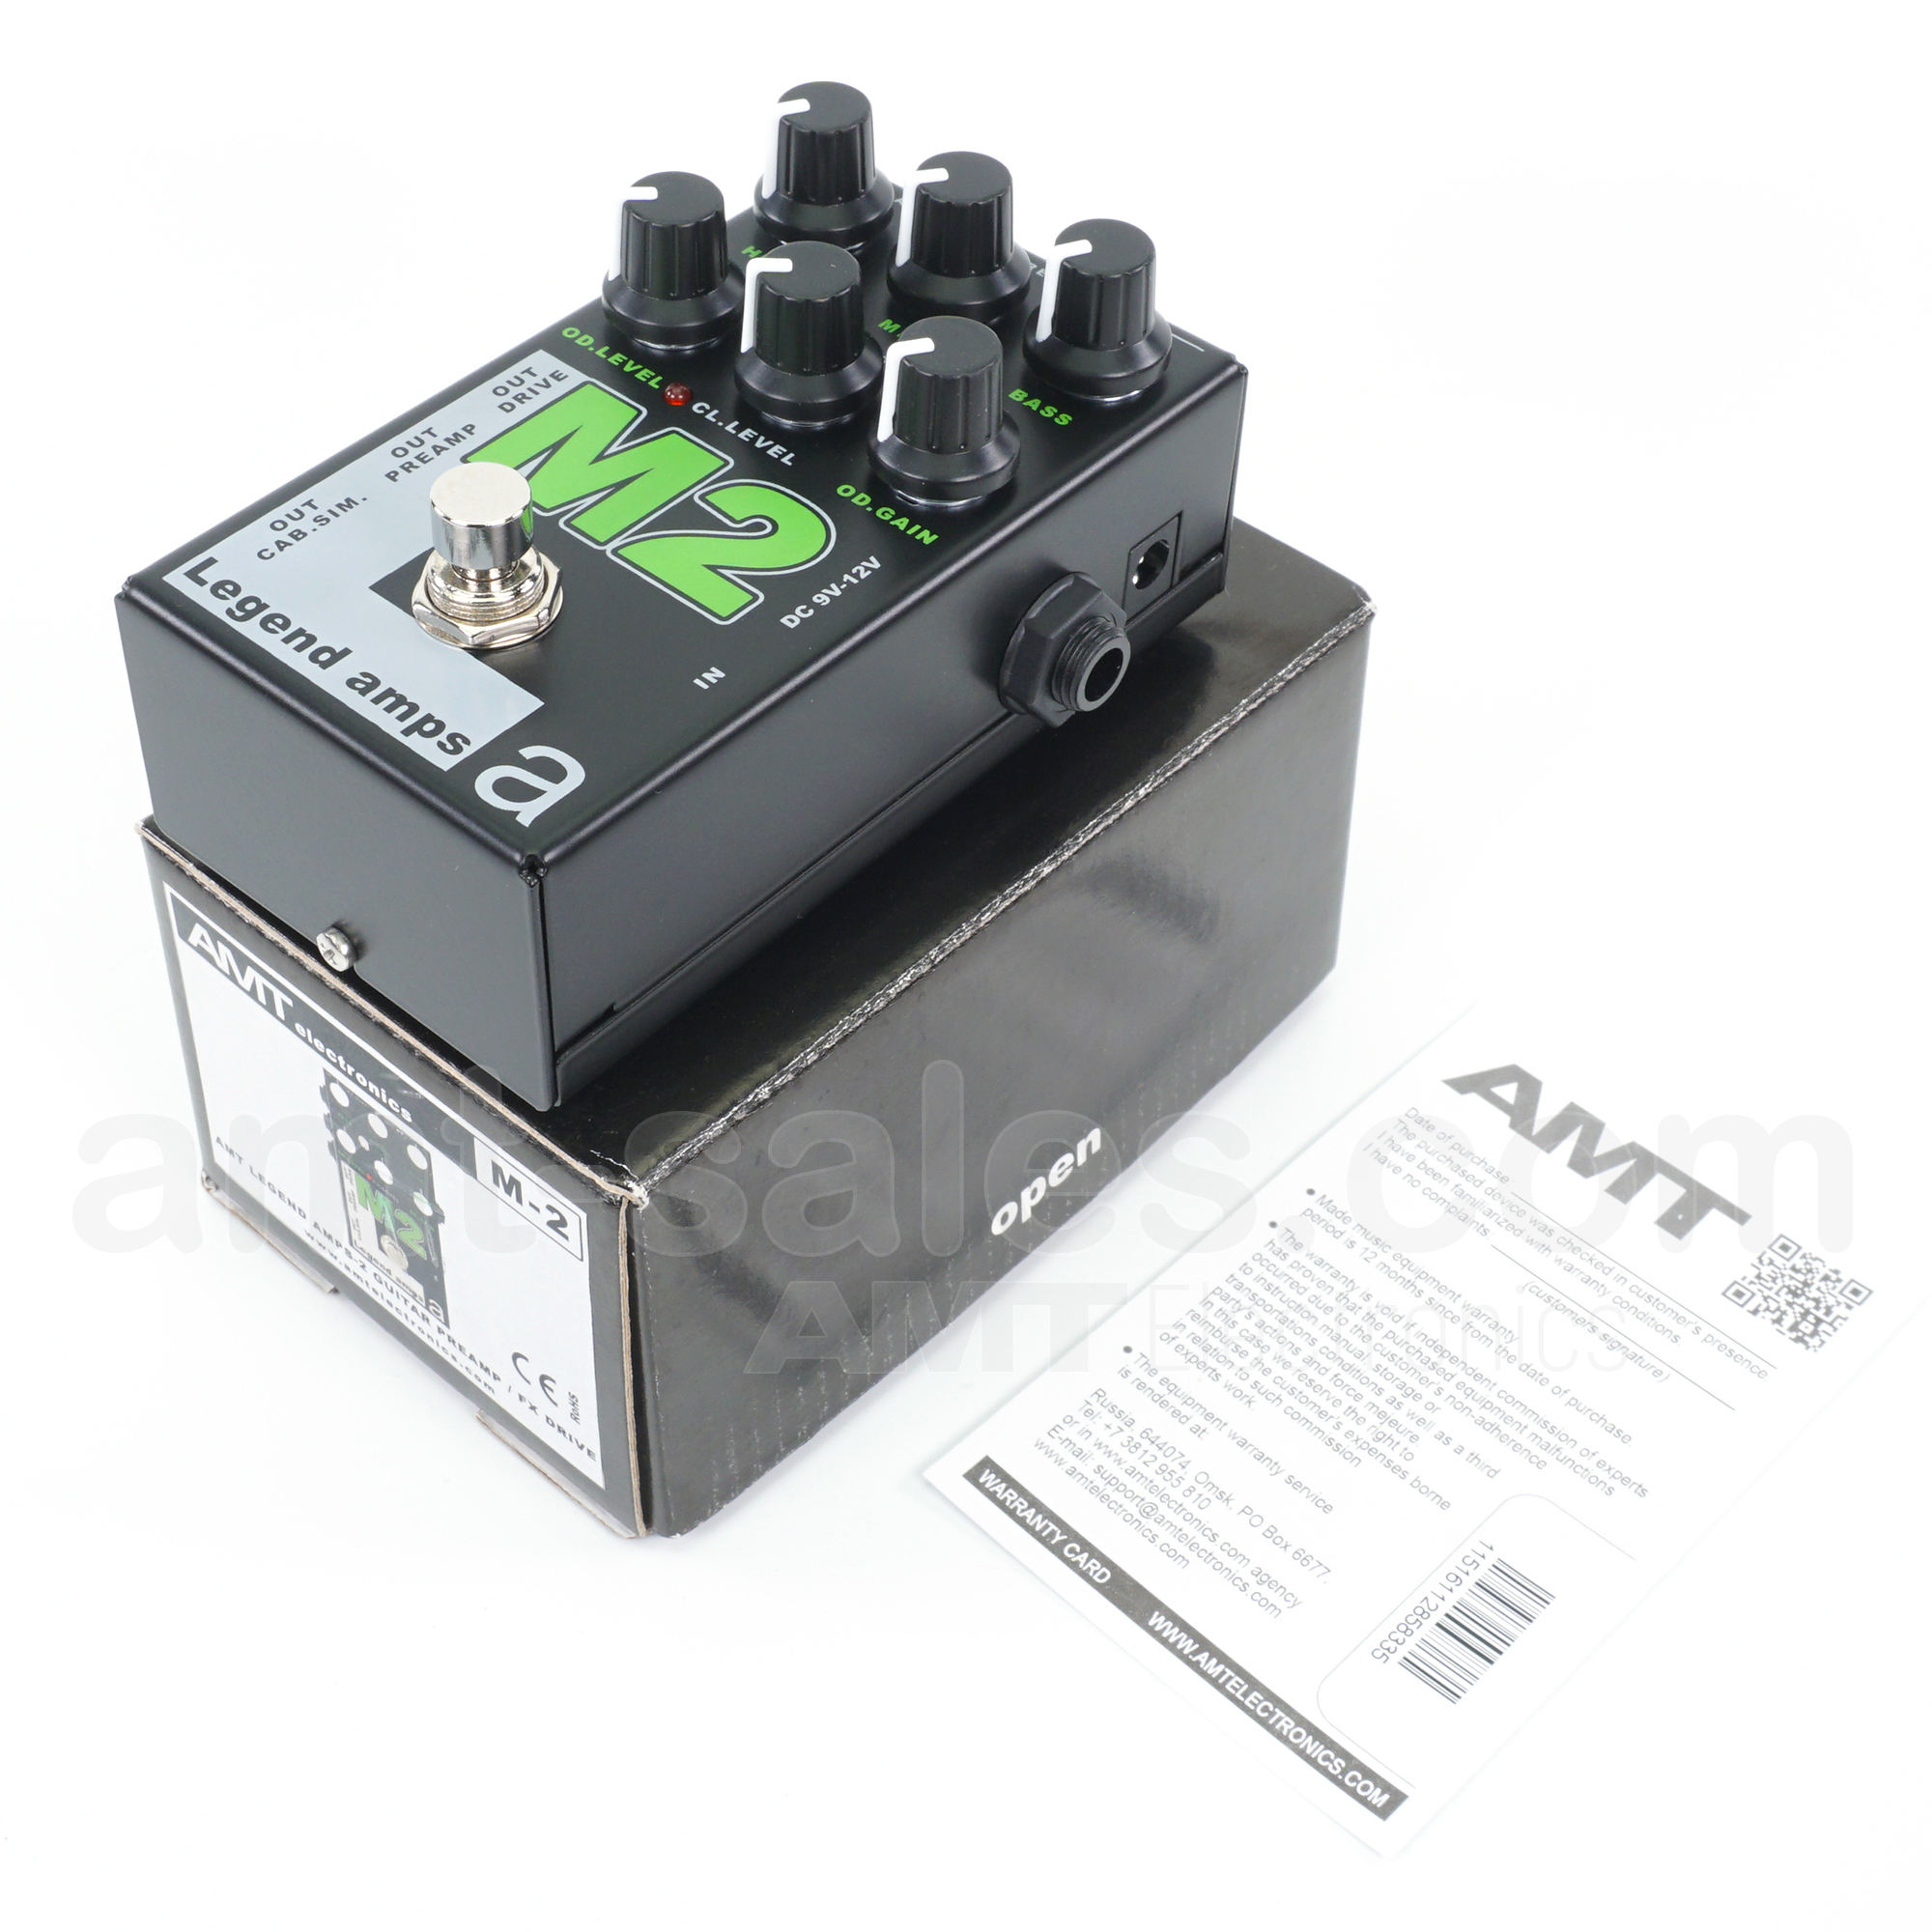 AMT M2 - 2 channels guitar preamp/distortion pedal (Marshall)